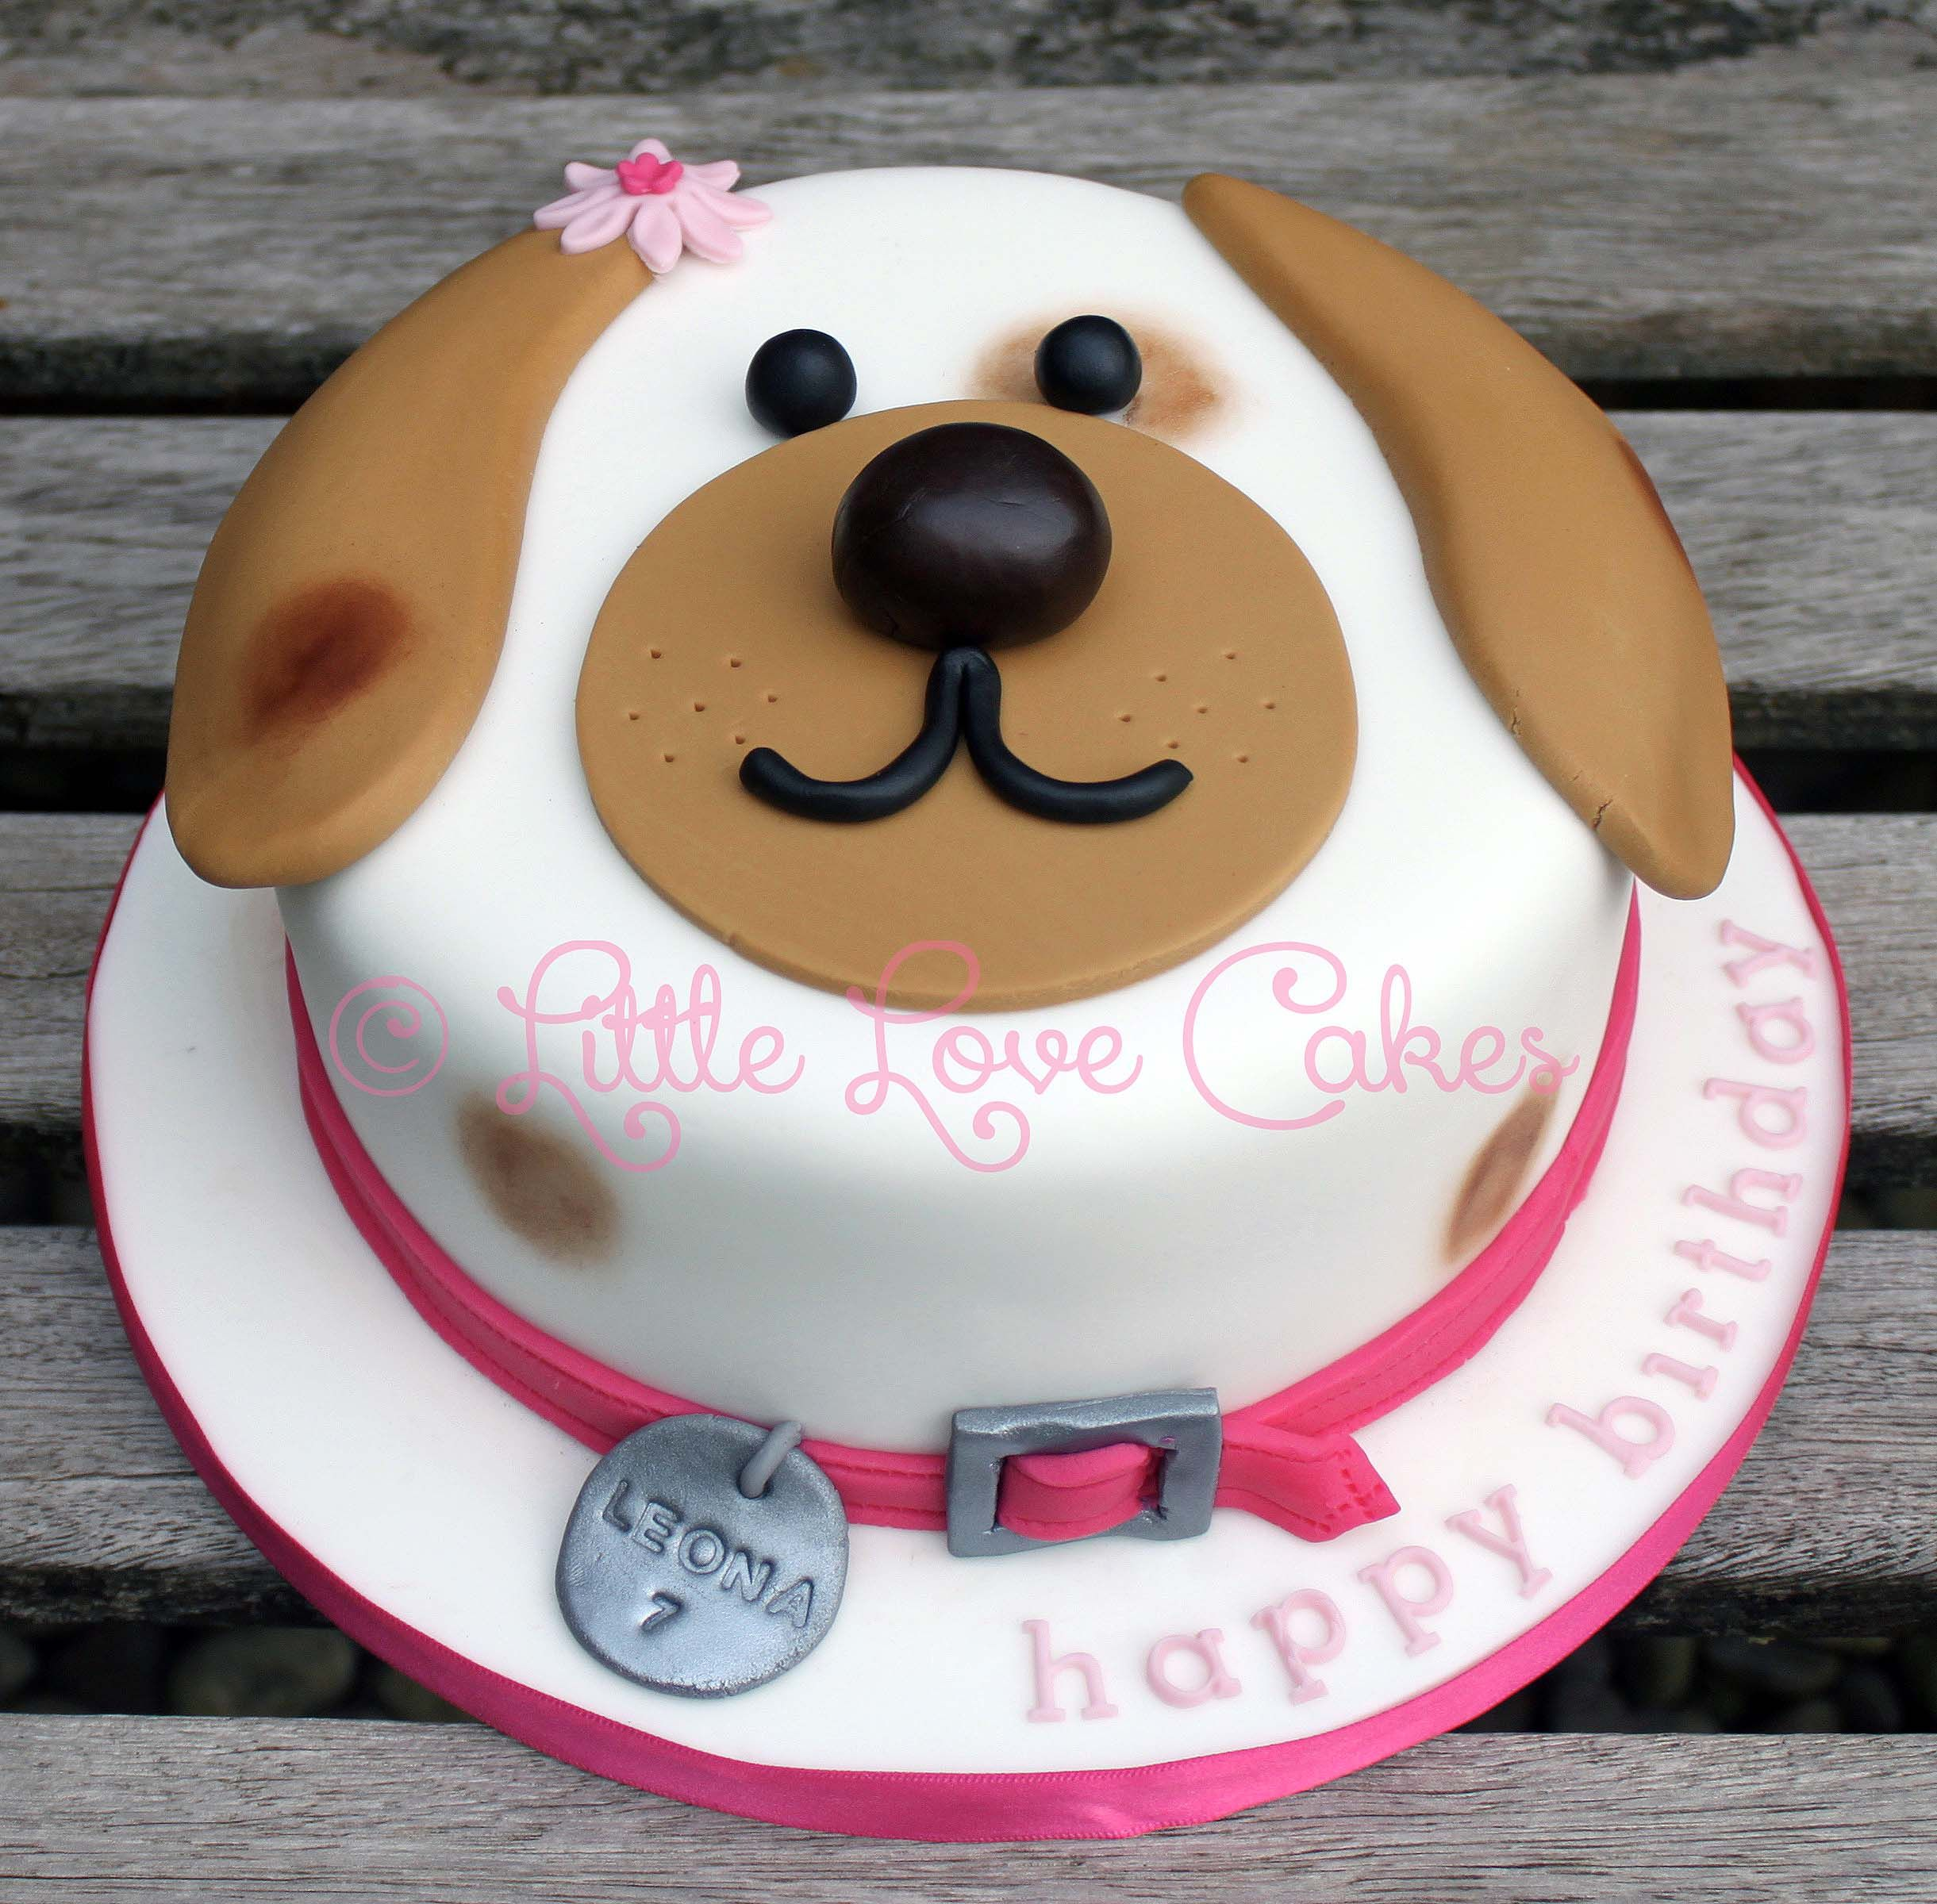 Little Love Cakes: Cute Dog Face Cake …